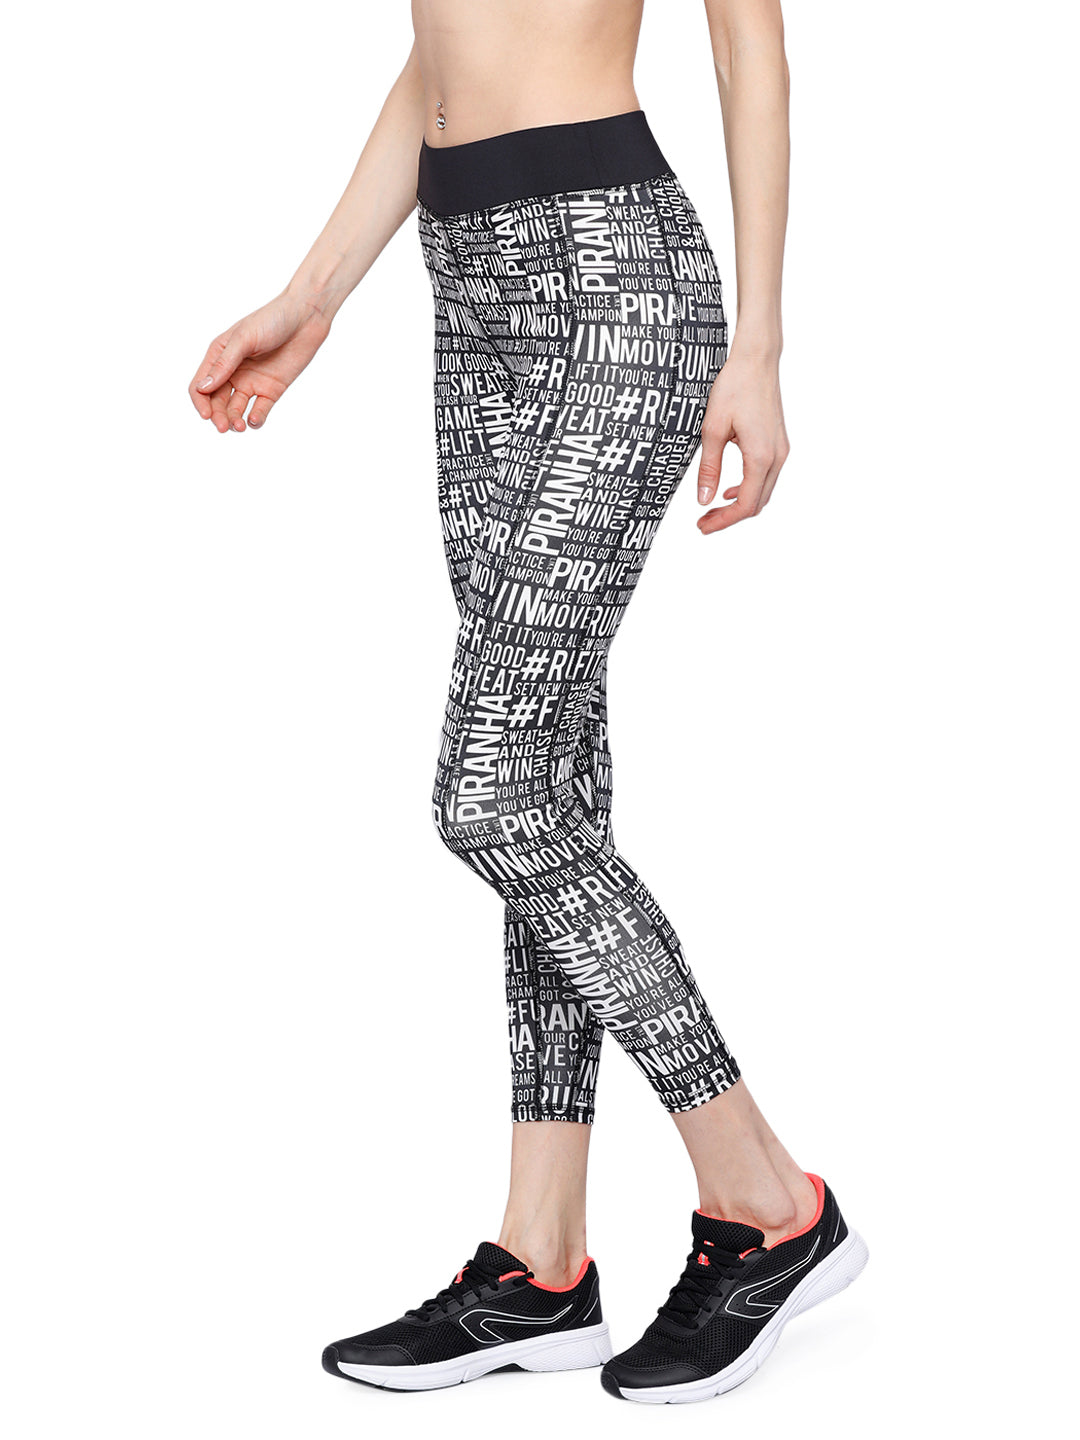 Piranha Women Black Printed Yoga And Running Pants - YP128